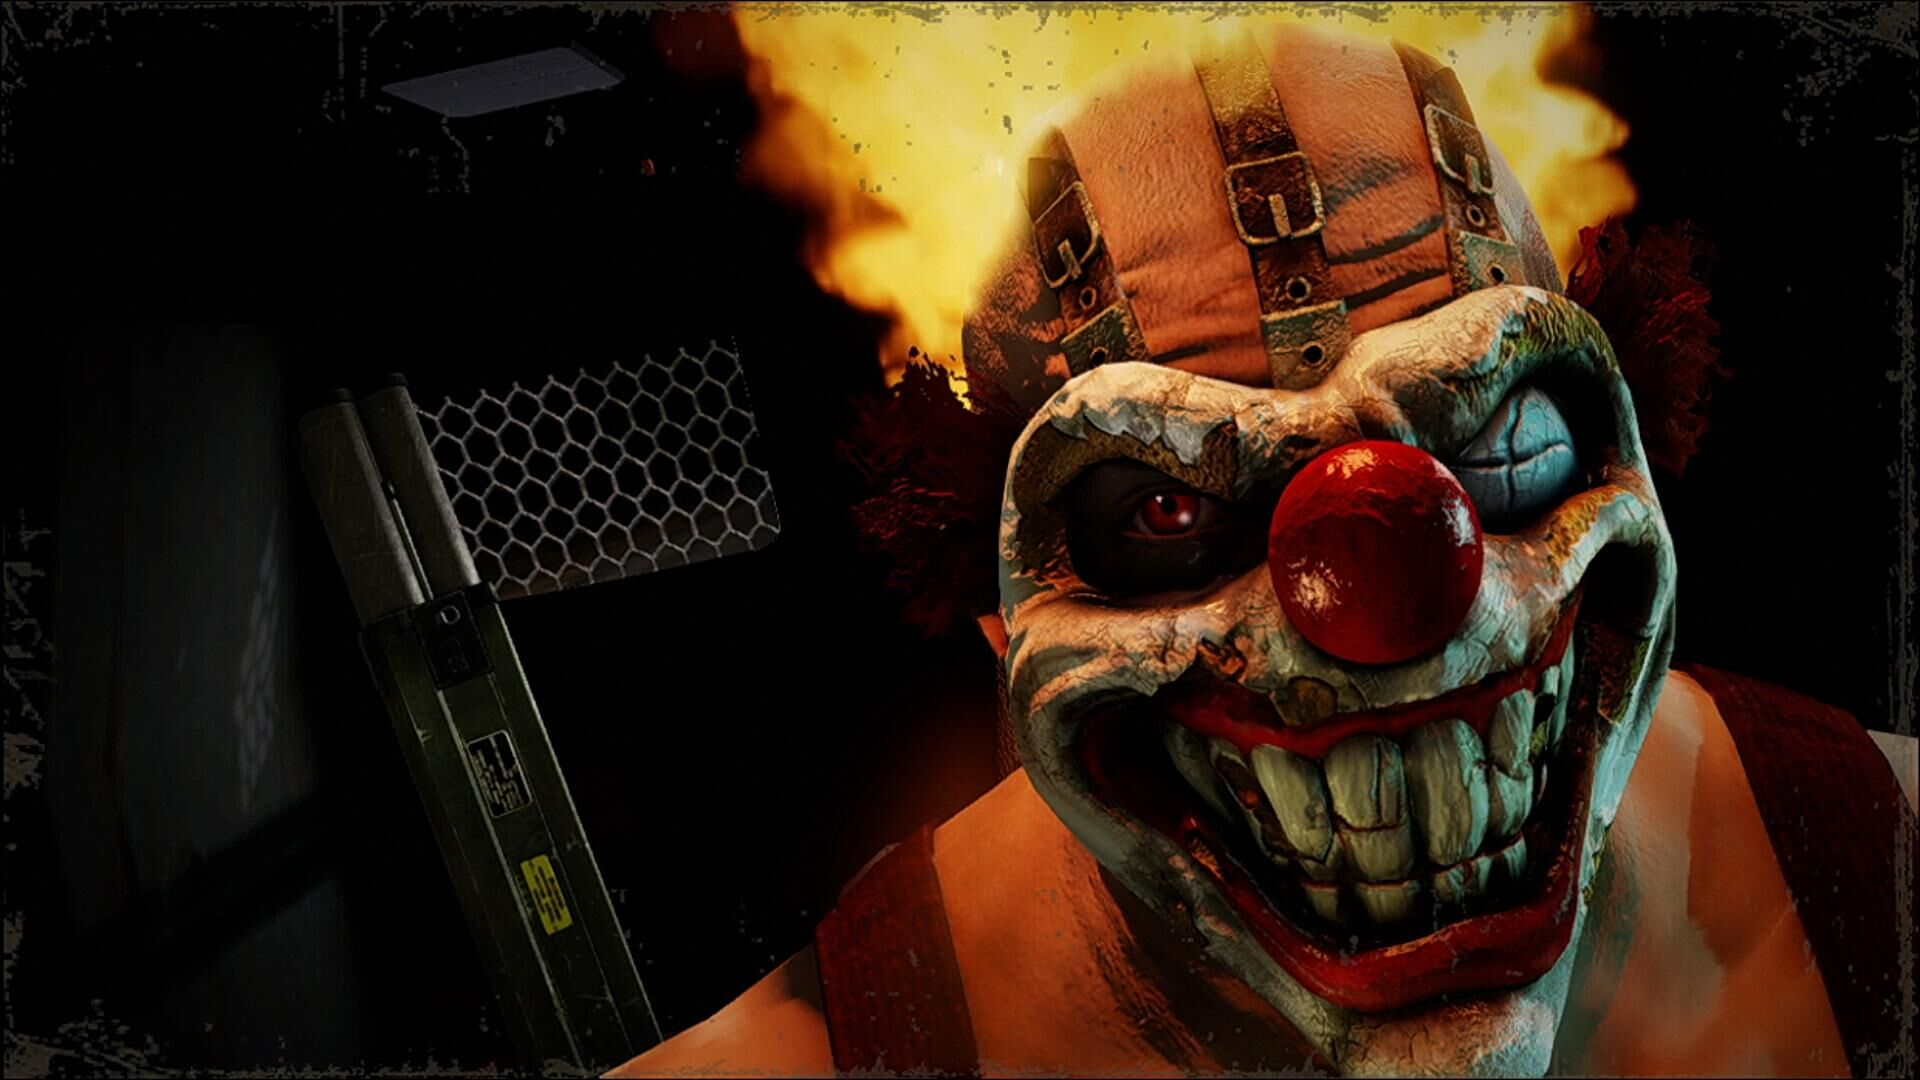 39 twisted metal 39 icon sweet tooth gets funko pop figure - Sweet tooth wallpaper twisted metal ...